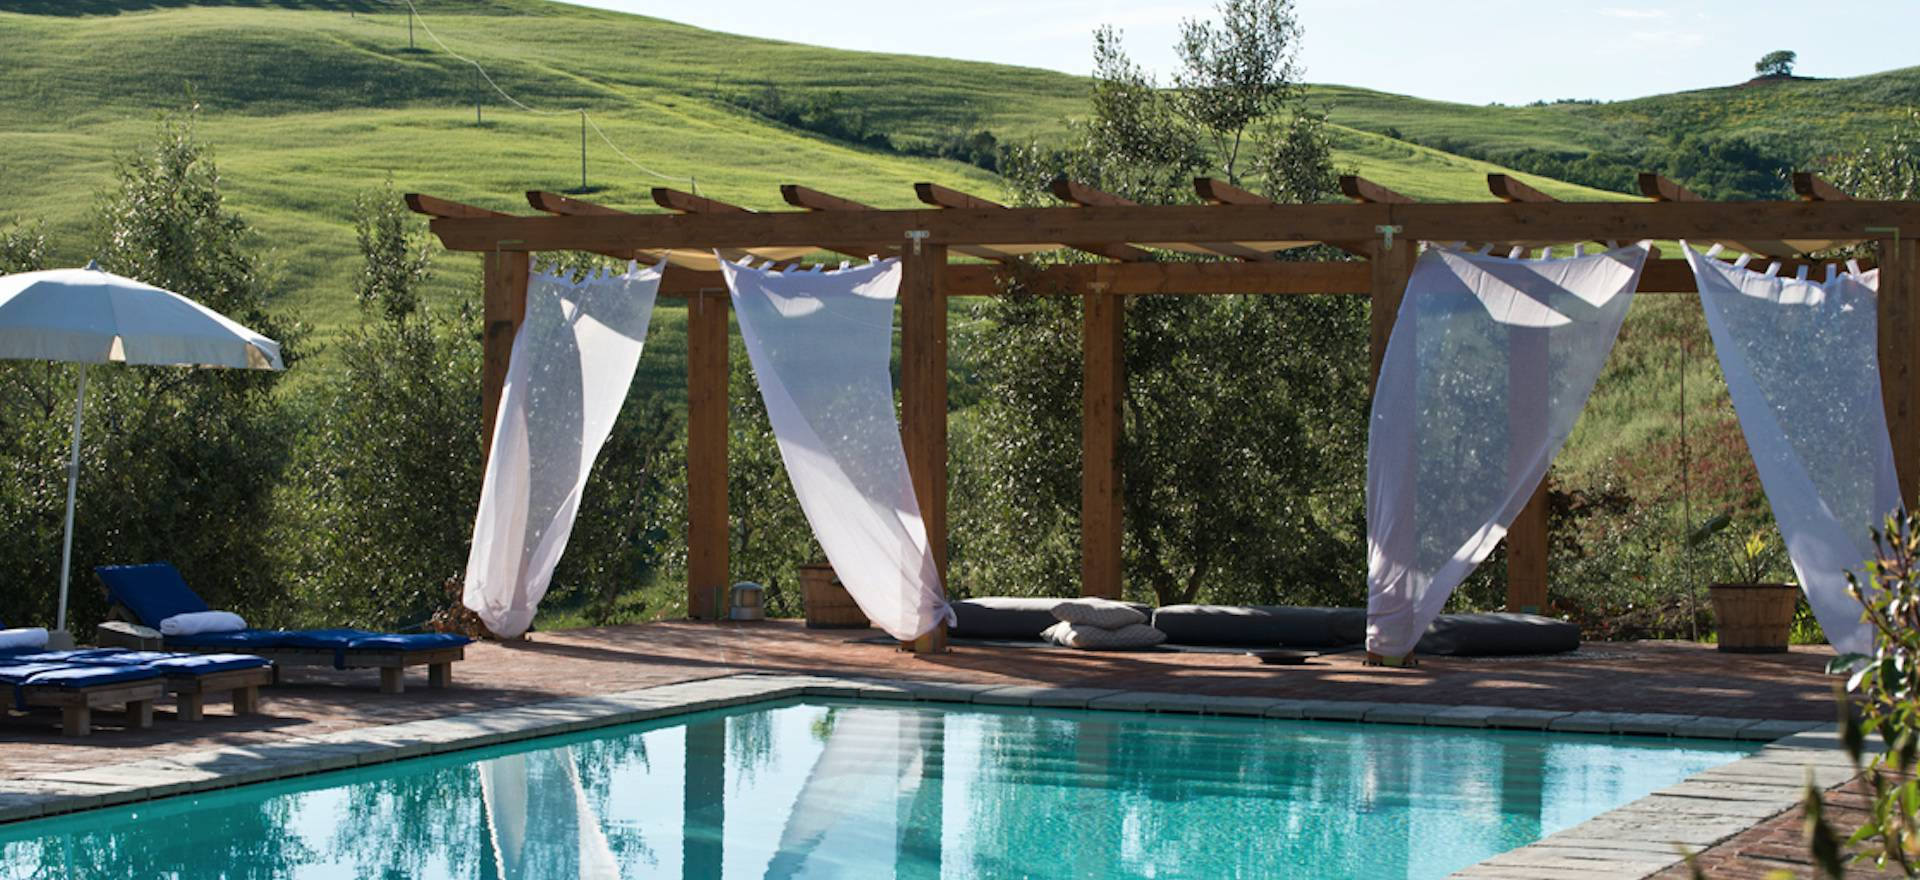 Agriturismo Tuscany Cozy agriturismo with amazing views of Volterra, Tuscany